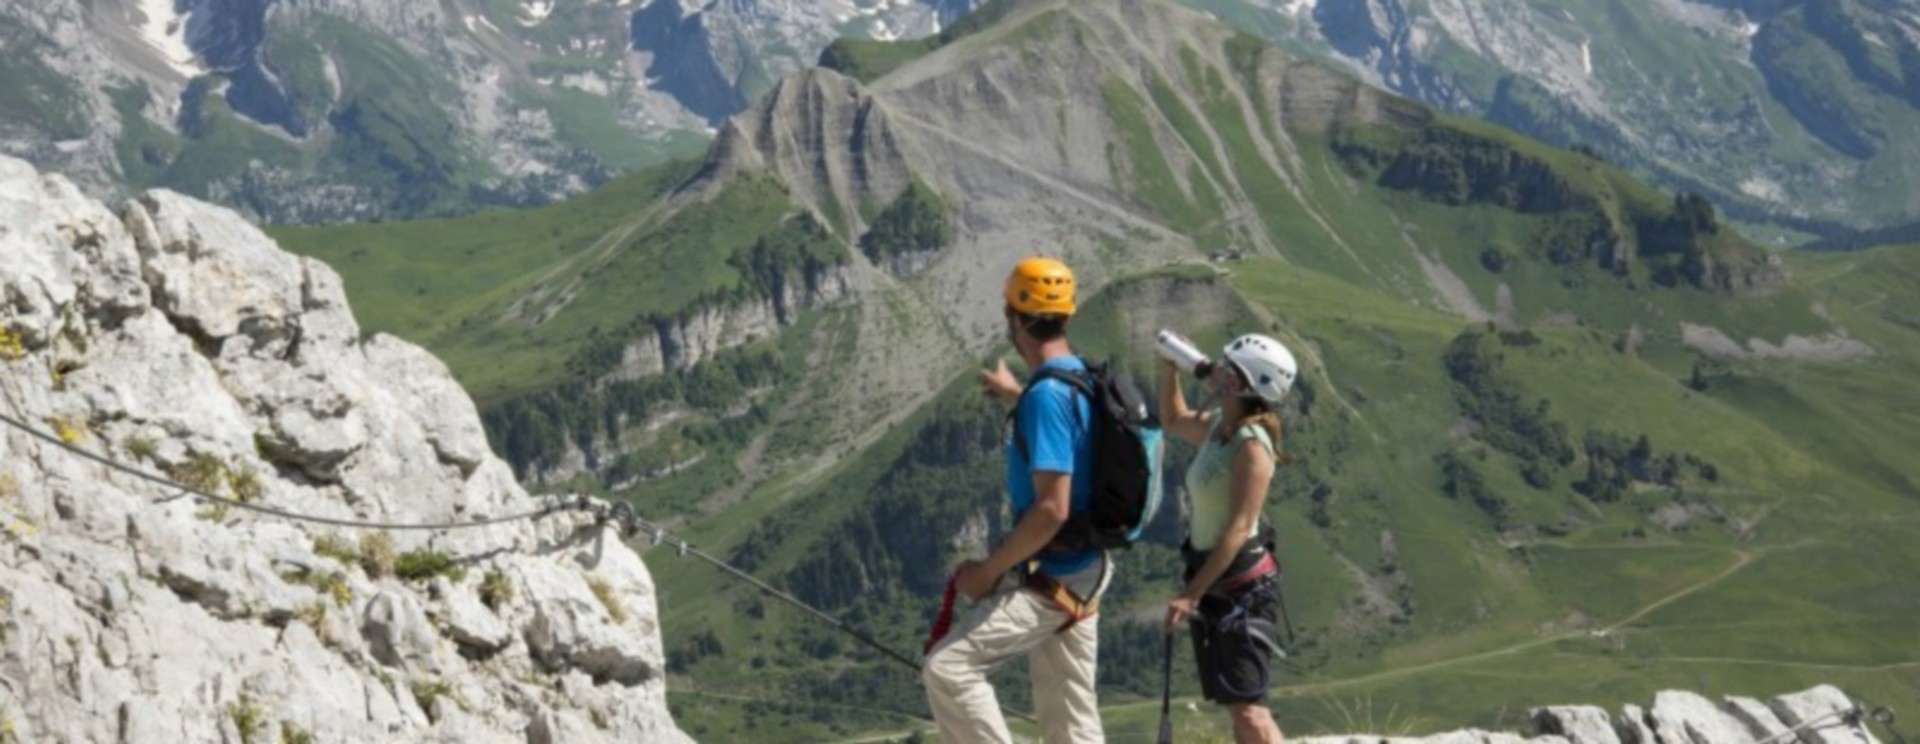 escalade-et-via-ferrata-3110-4342-4636